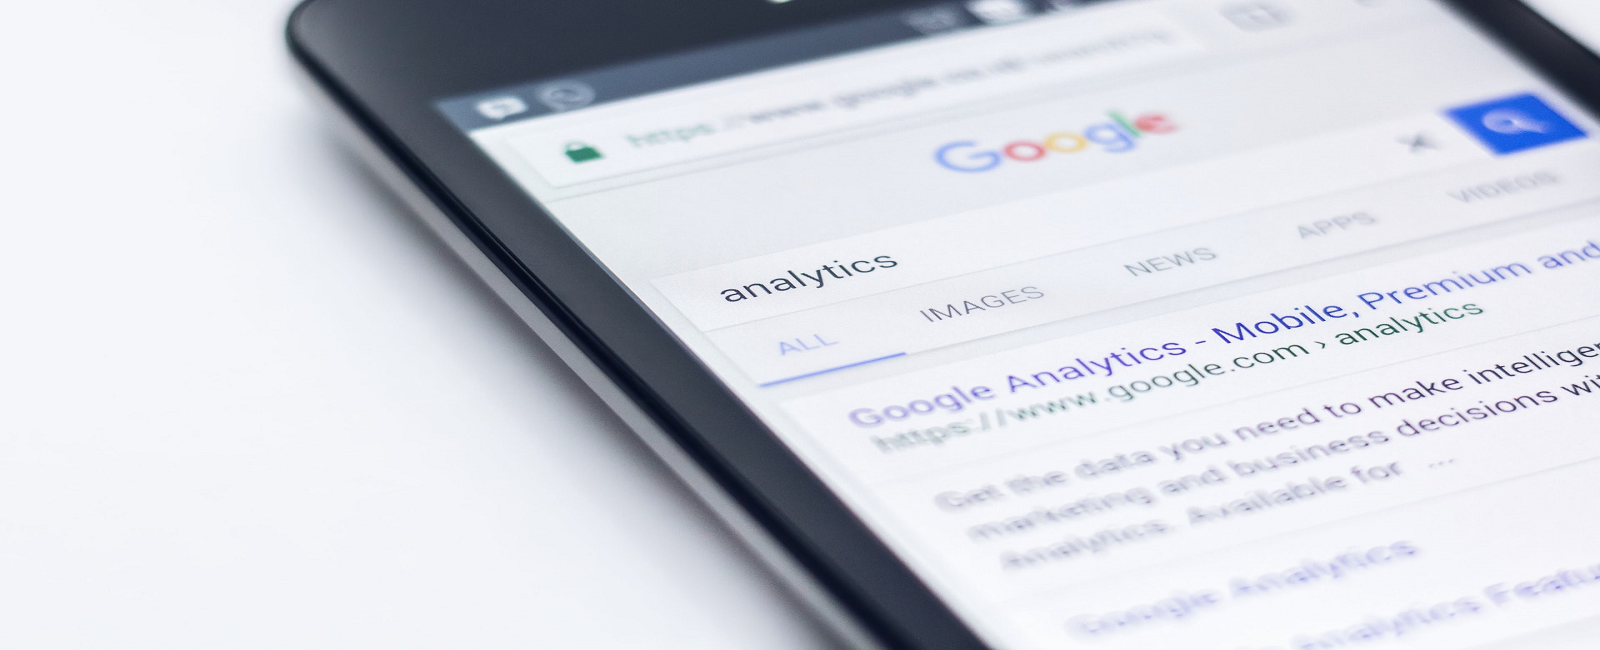 Google Analytics 4: What's in and What's Out?